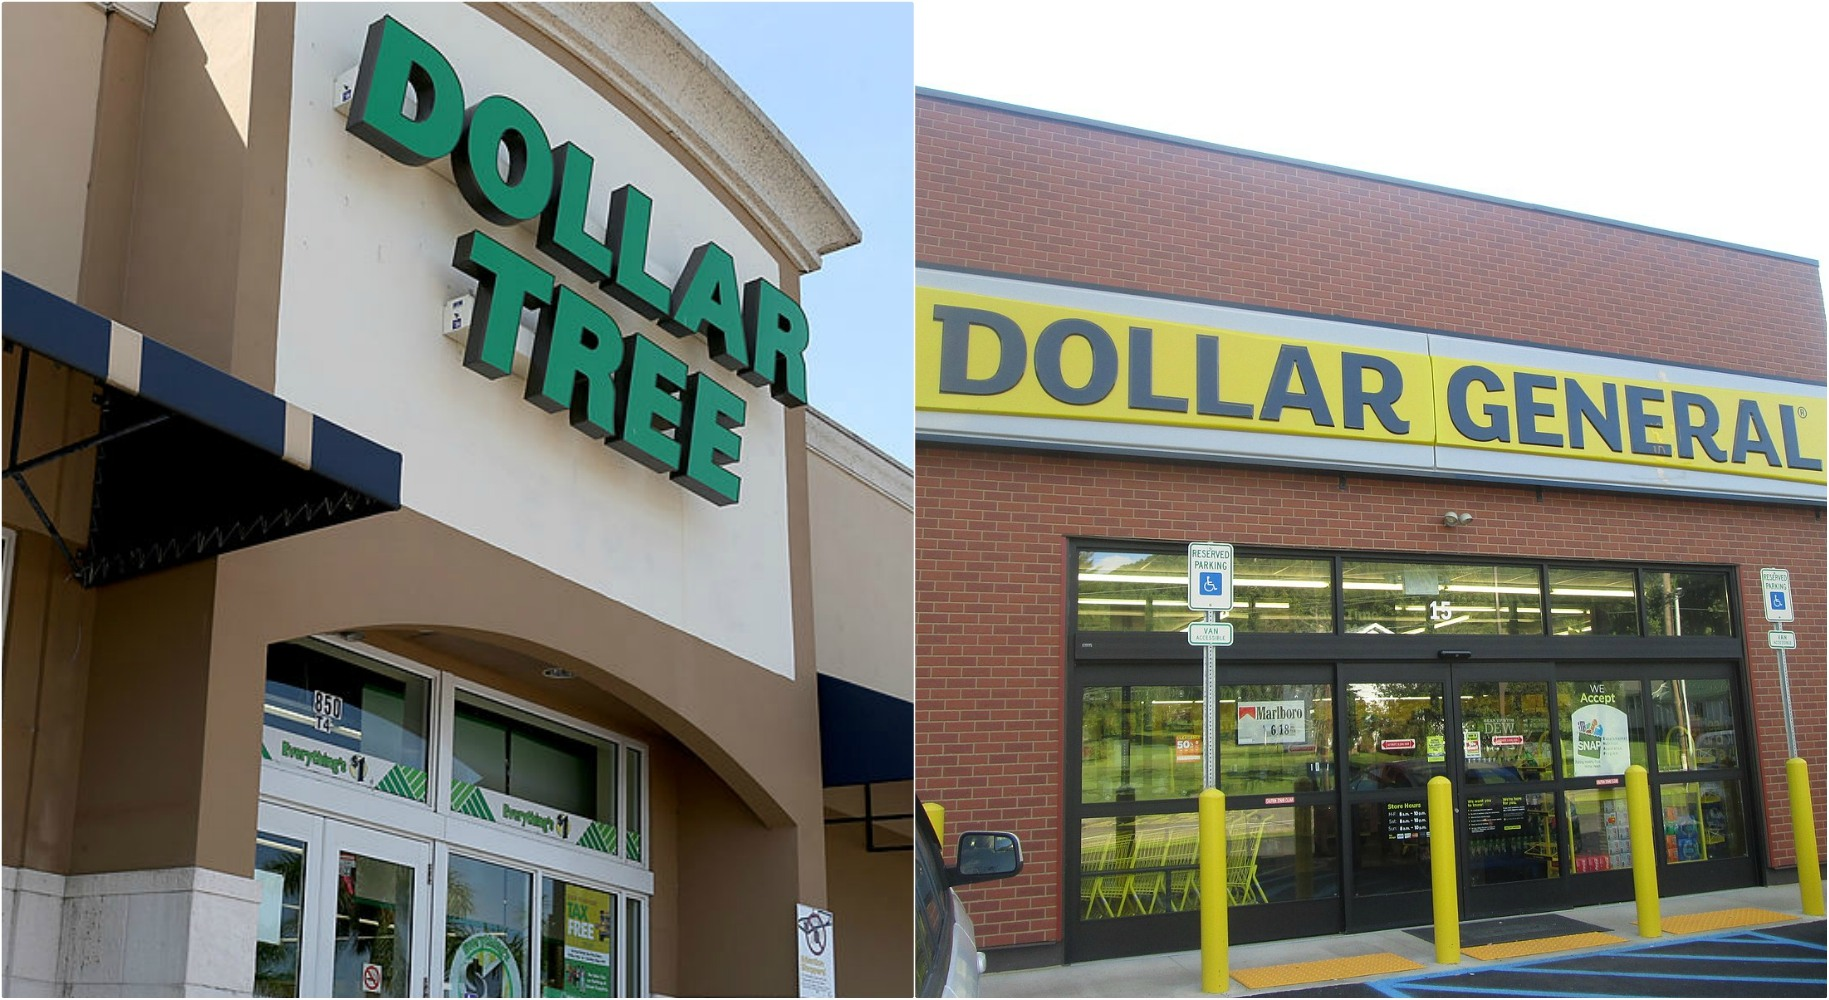 Dollar Tree Vs General The Store With Better Values May Surprise You